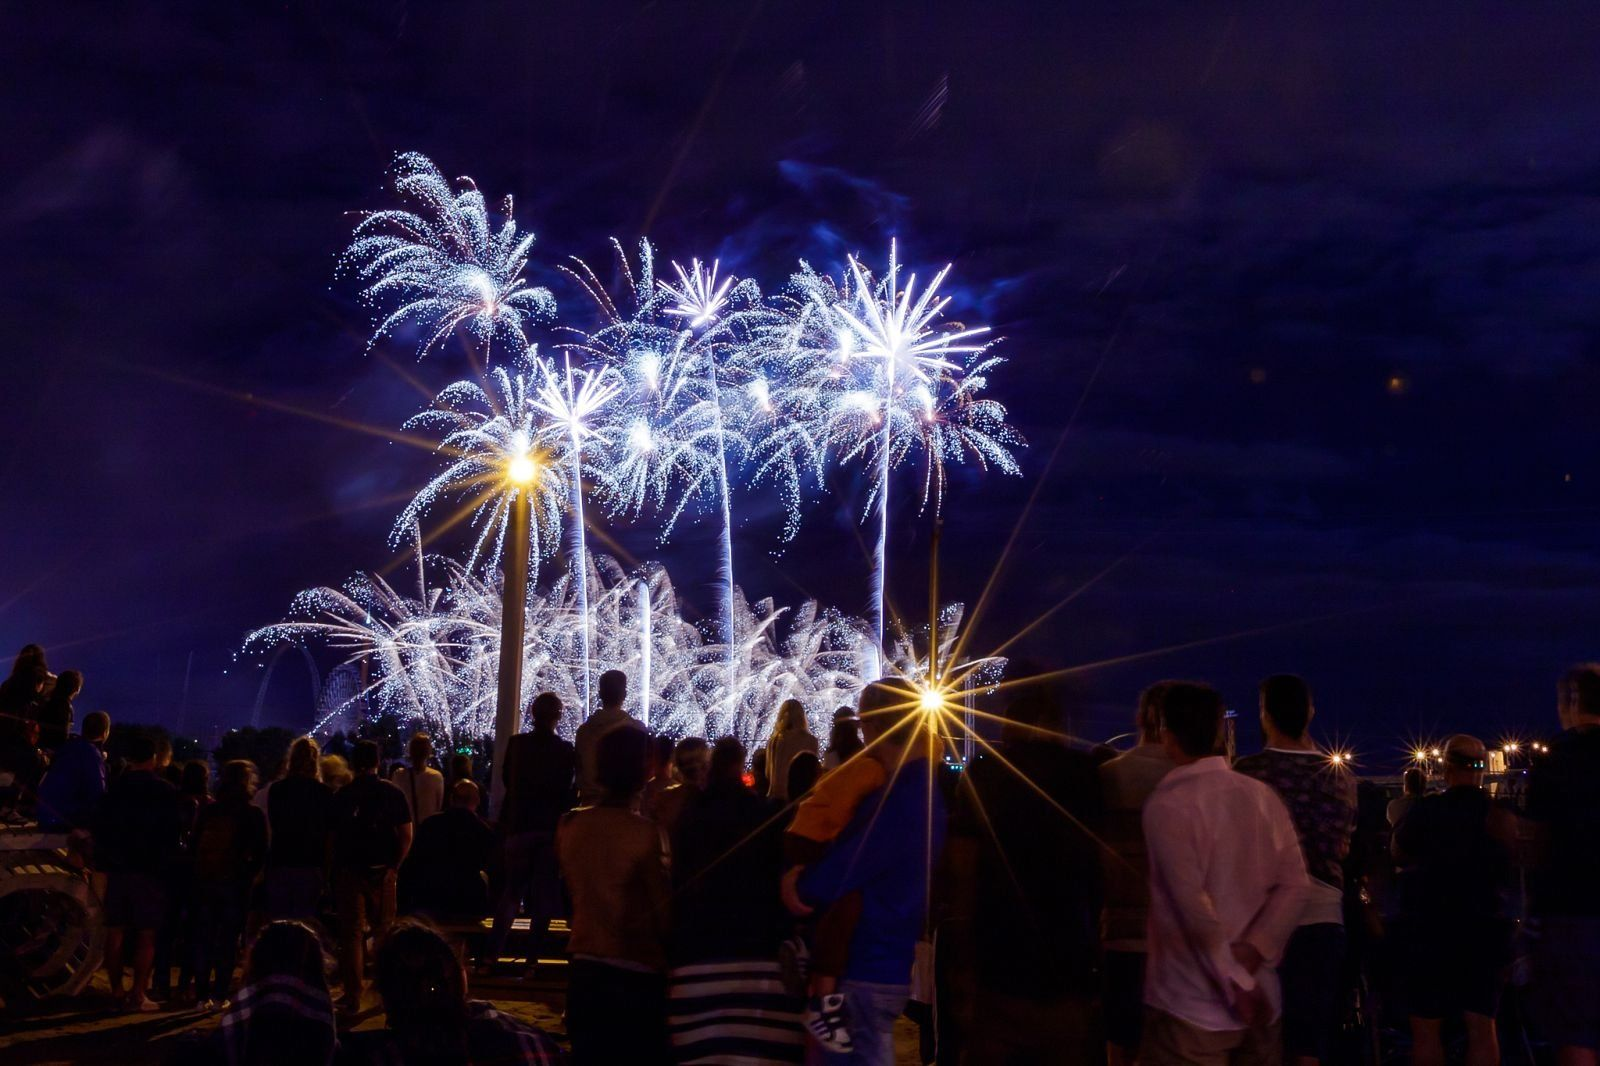 montreal_fireworks_competition_201730_1100.jpg